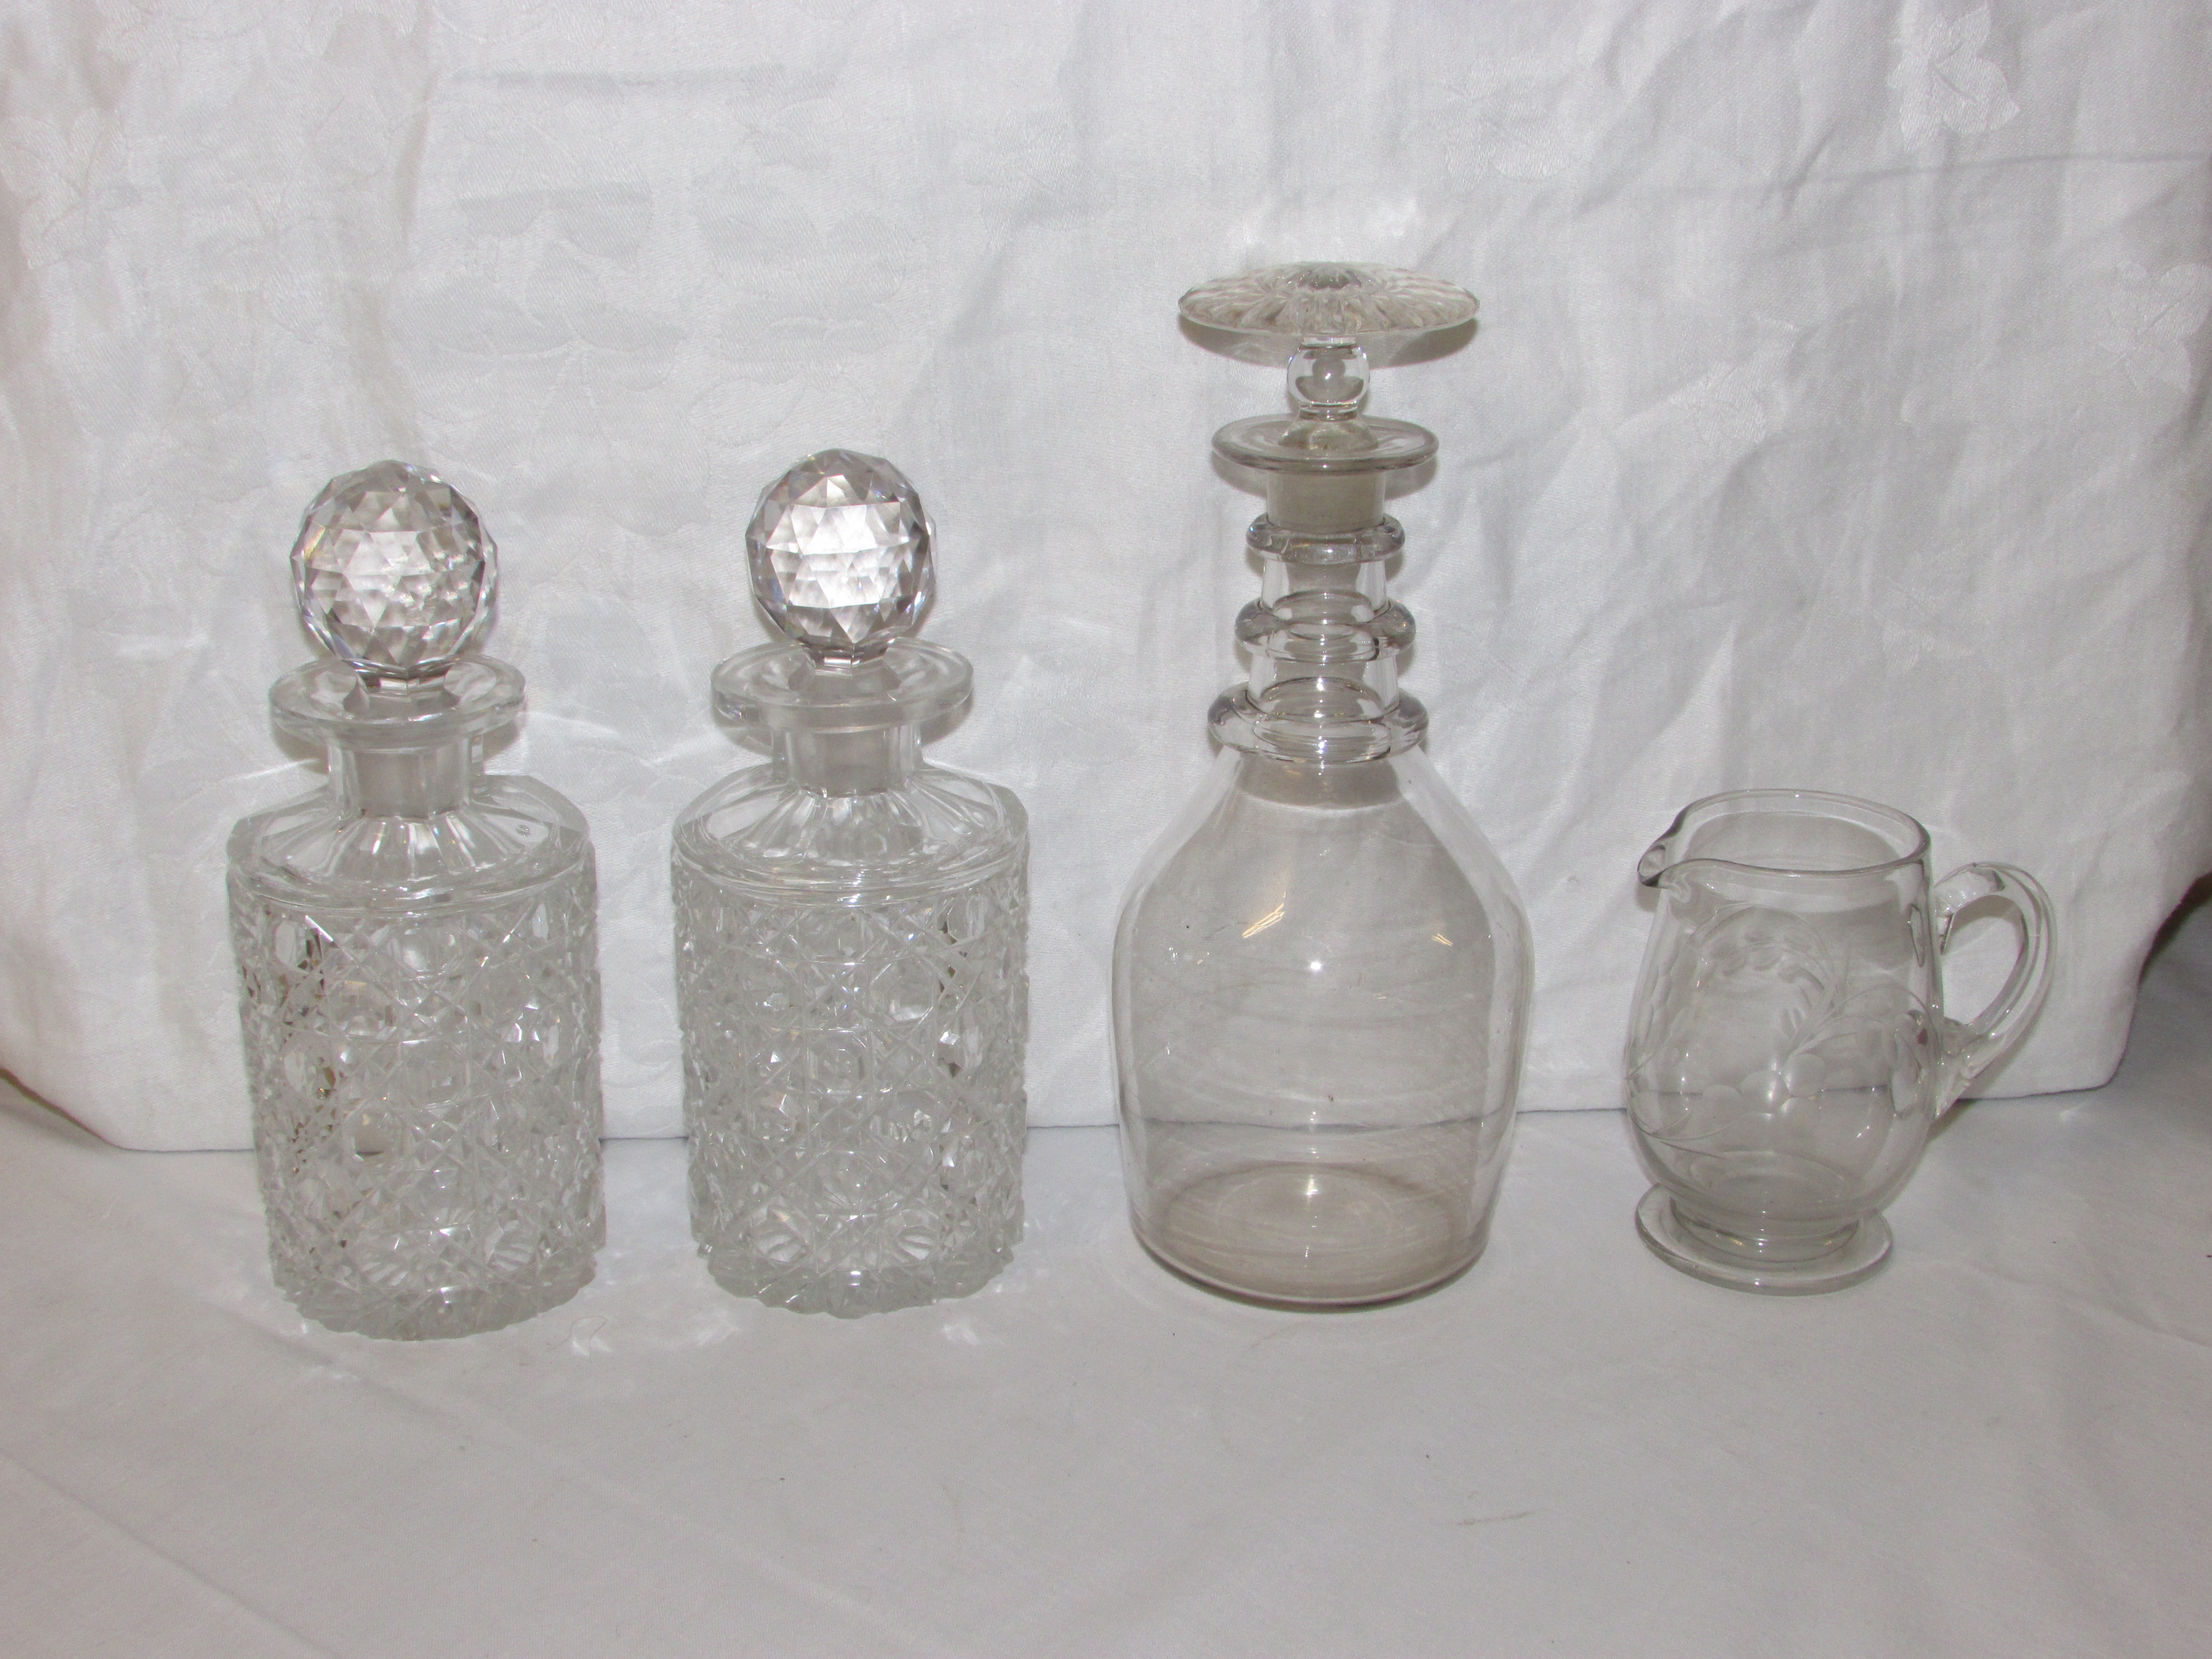 Lot 68 - Two heavily cut glass spirit decanters and stoppers, engraved glass milk jug and wine decanter